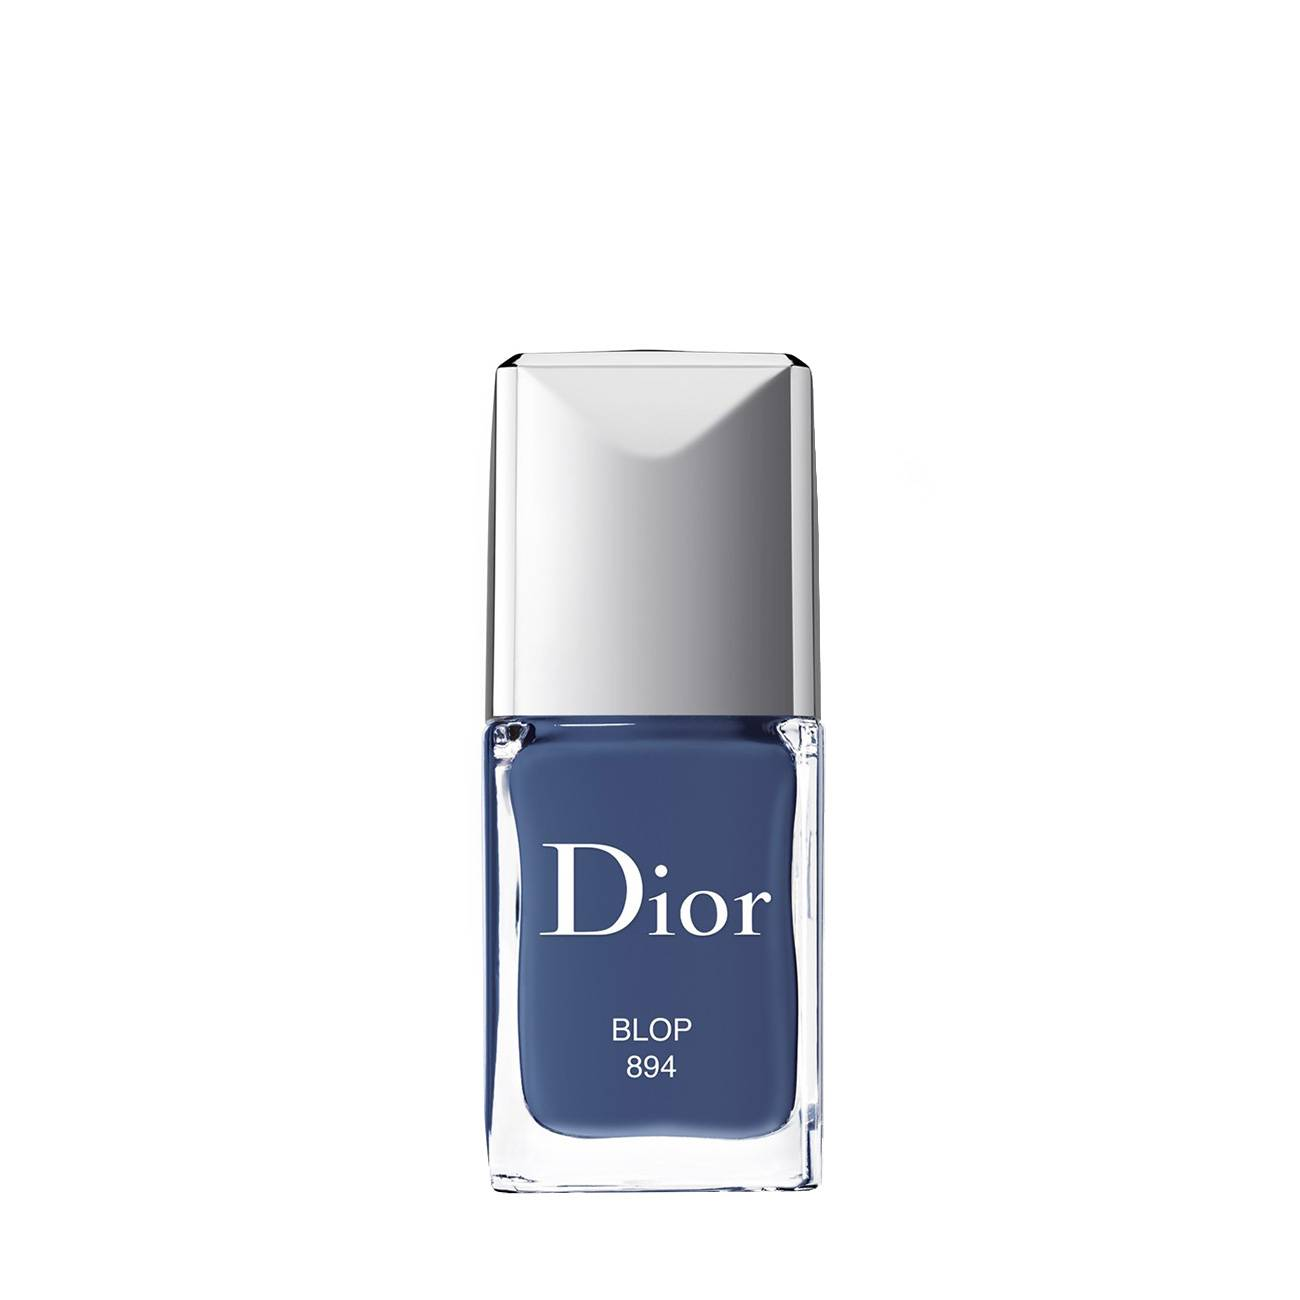 Dior Vernis 894 10ml Dior imagine 2021 bestvalue.eu